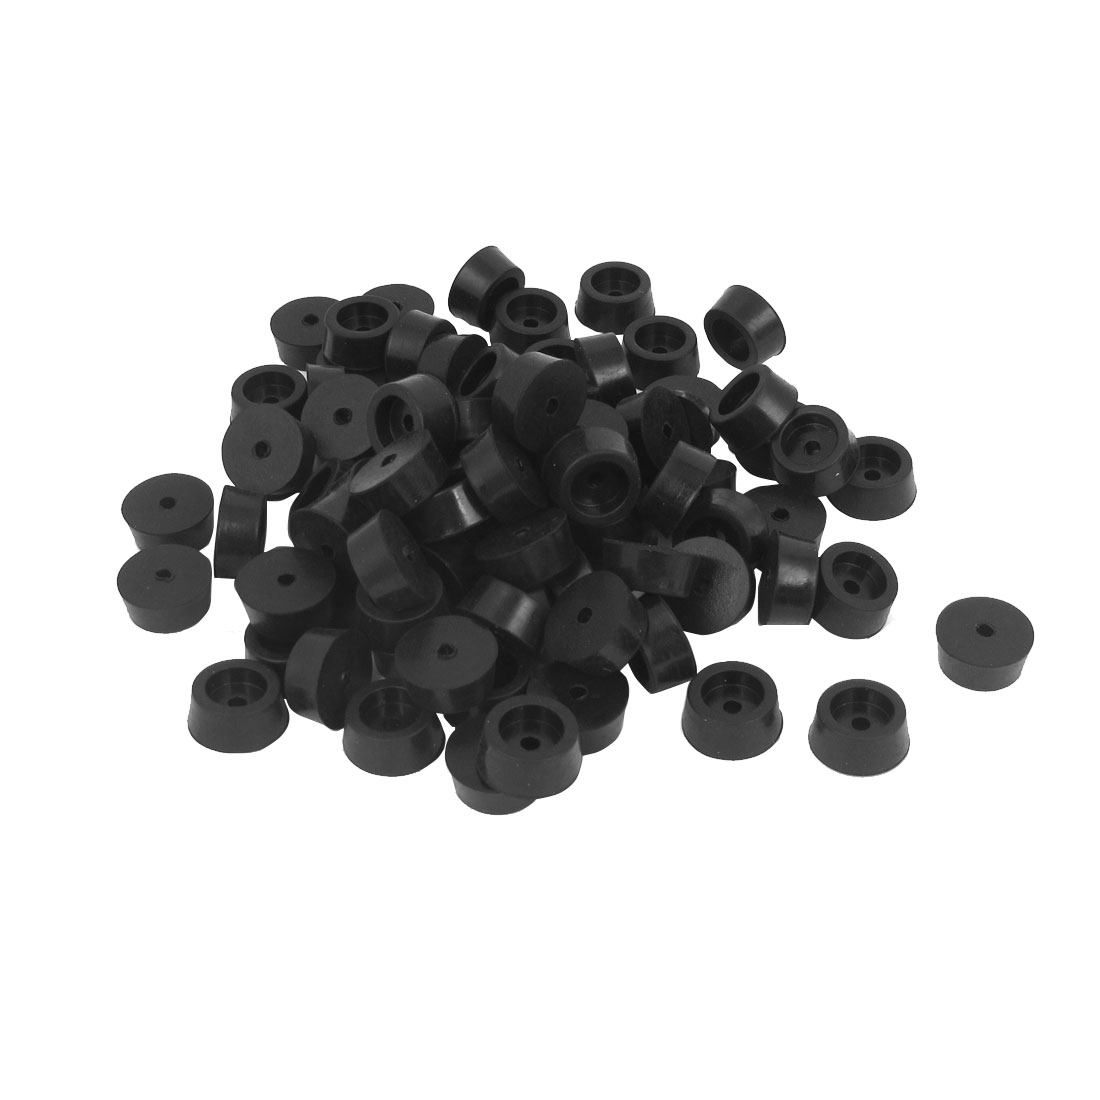 123pcs Nonslip Rubber Feet Protector 18mmx8mm Black for Lathe Machine Furniture